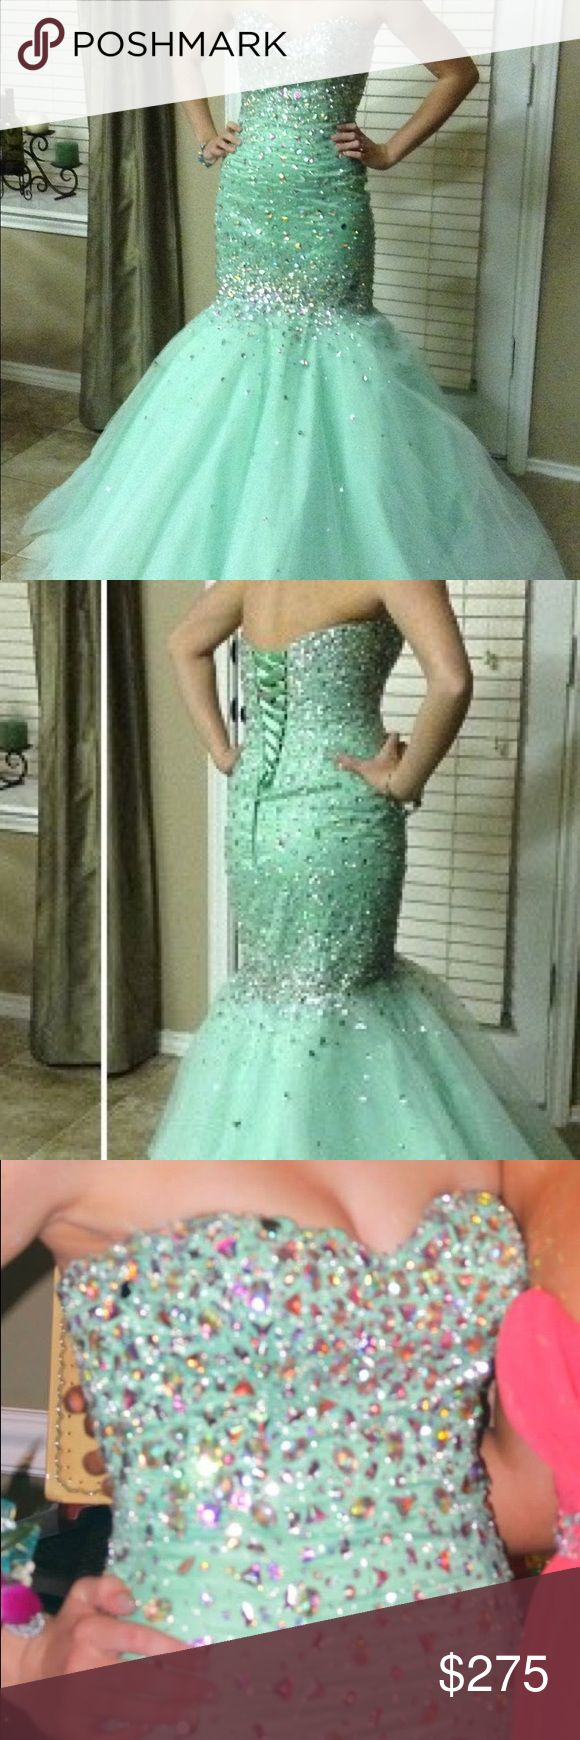 Mori Lee prom dress Purchased from a dress boutique for just over $500. Mint green mermaid corset style with lots of bling. Excellent condition. Sized as a 6 on the tag but fits like a 0-2. My daughter is 5'5, 110 lbs, size 34B for some size comparison. Mori Lee Dresses Prom